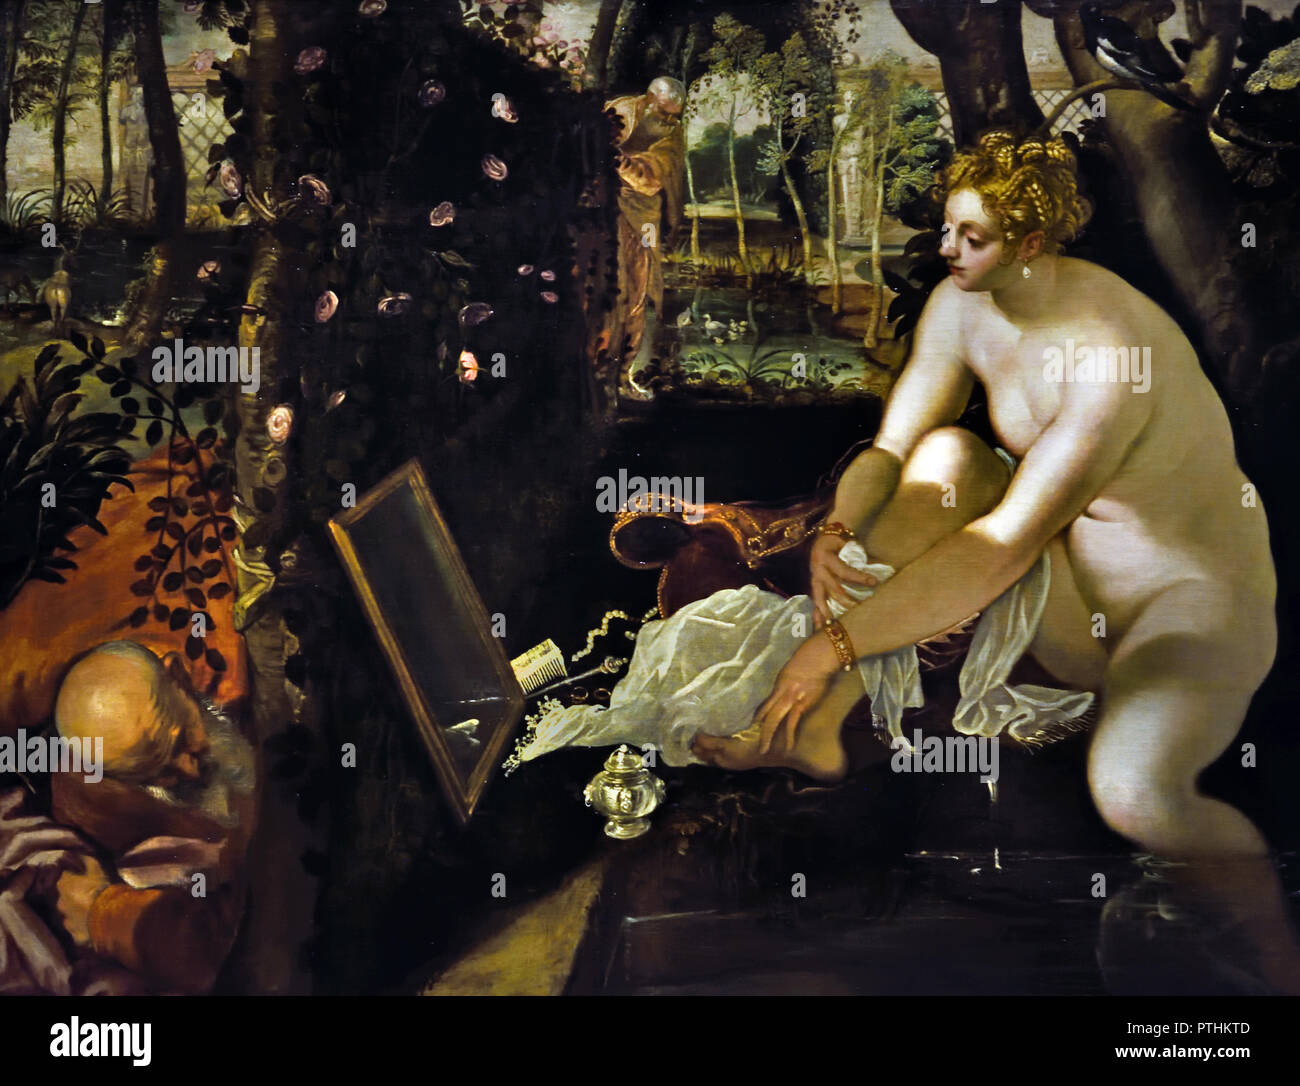 SUSANNA IN THE BATH 1555/1556 Jacopo Robusti, called Tintoretto (1518 - 1594 Venice) Italy Italian Stock Photo